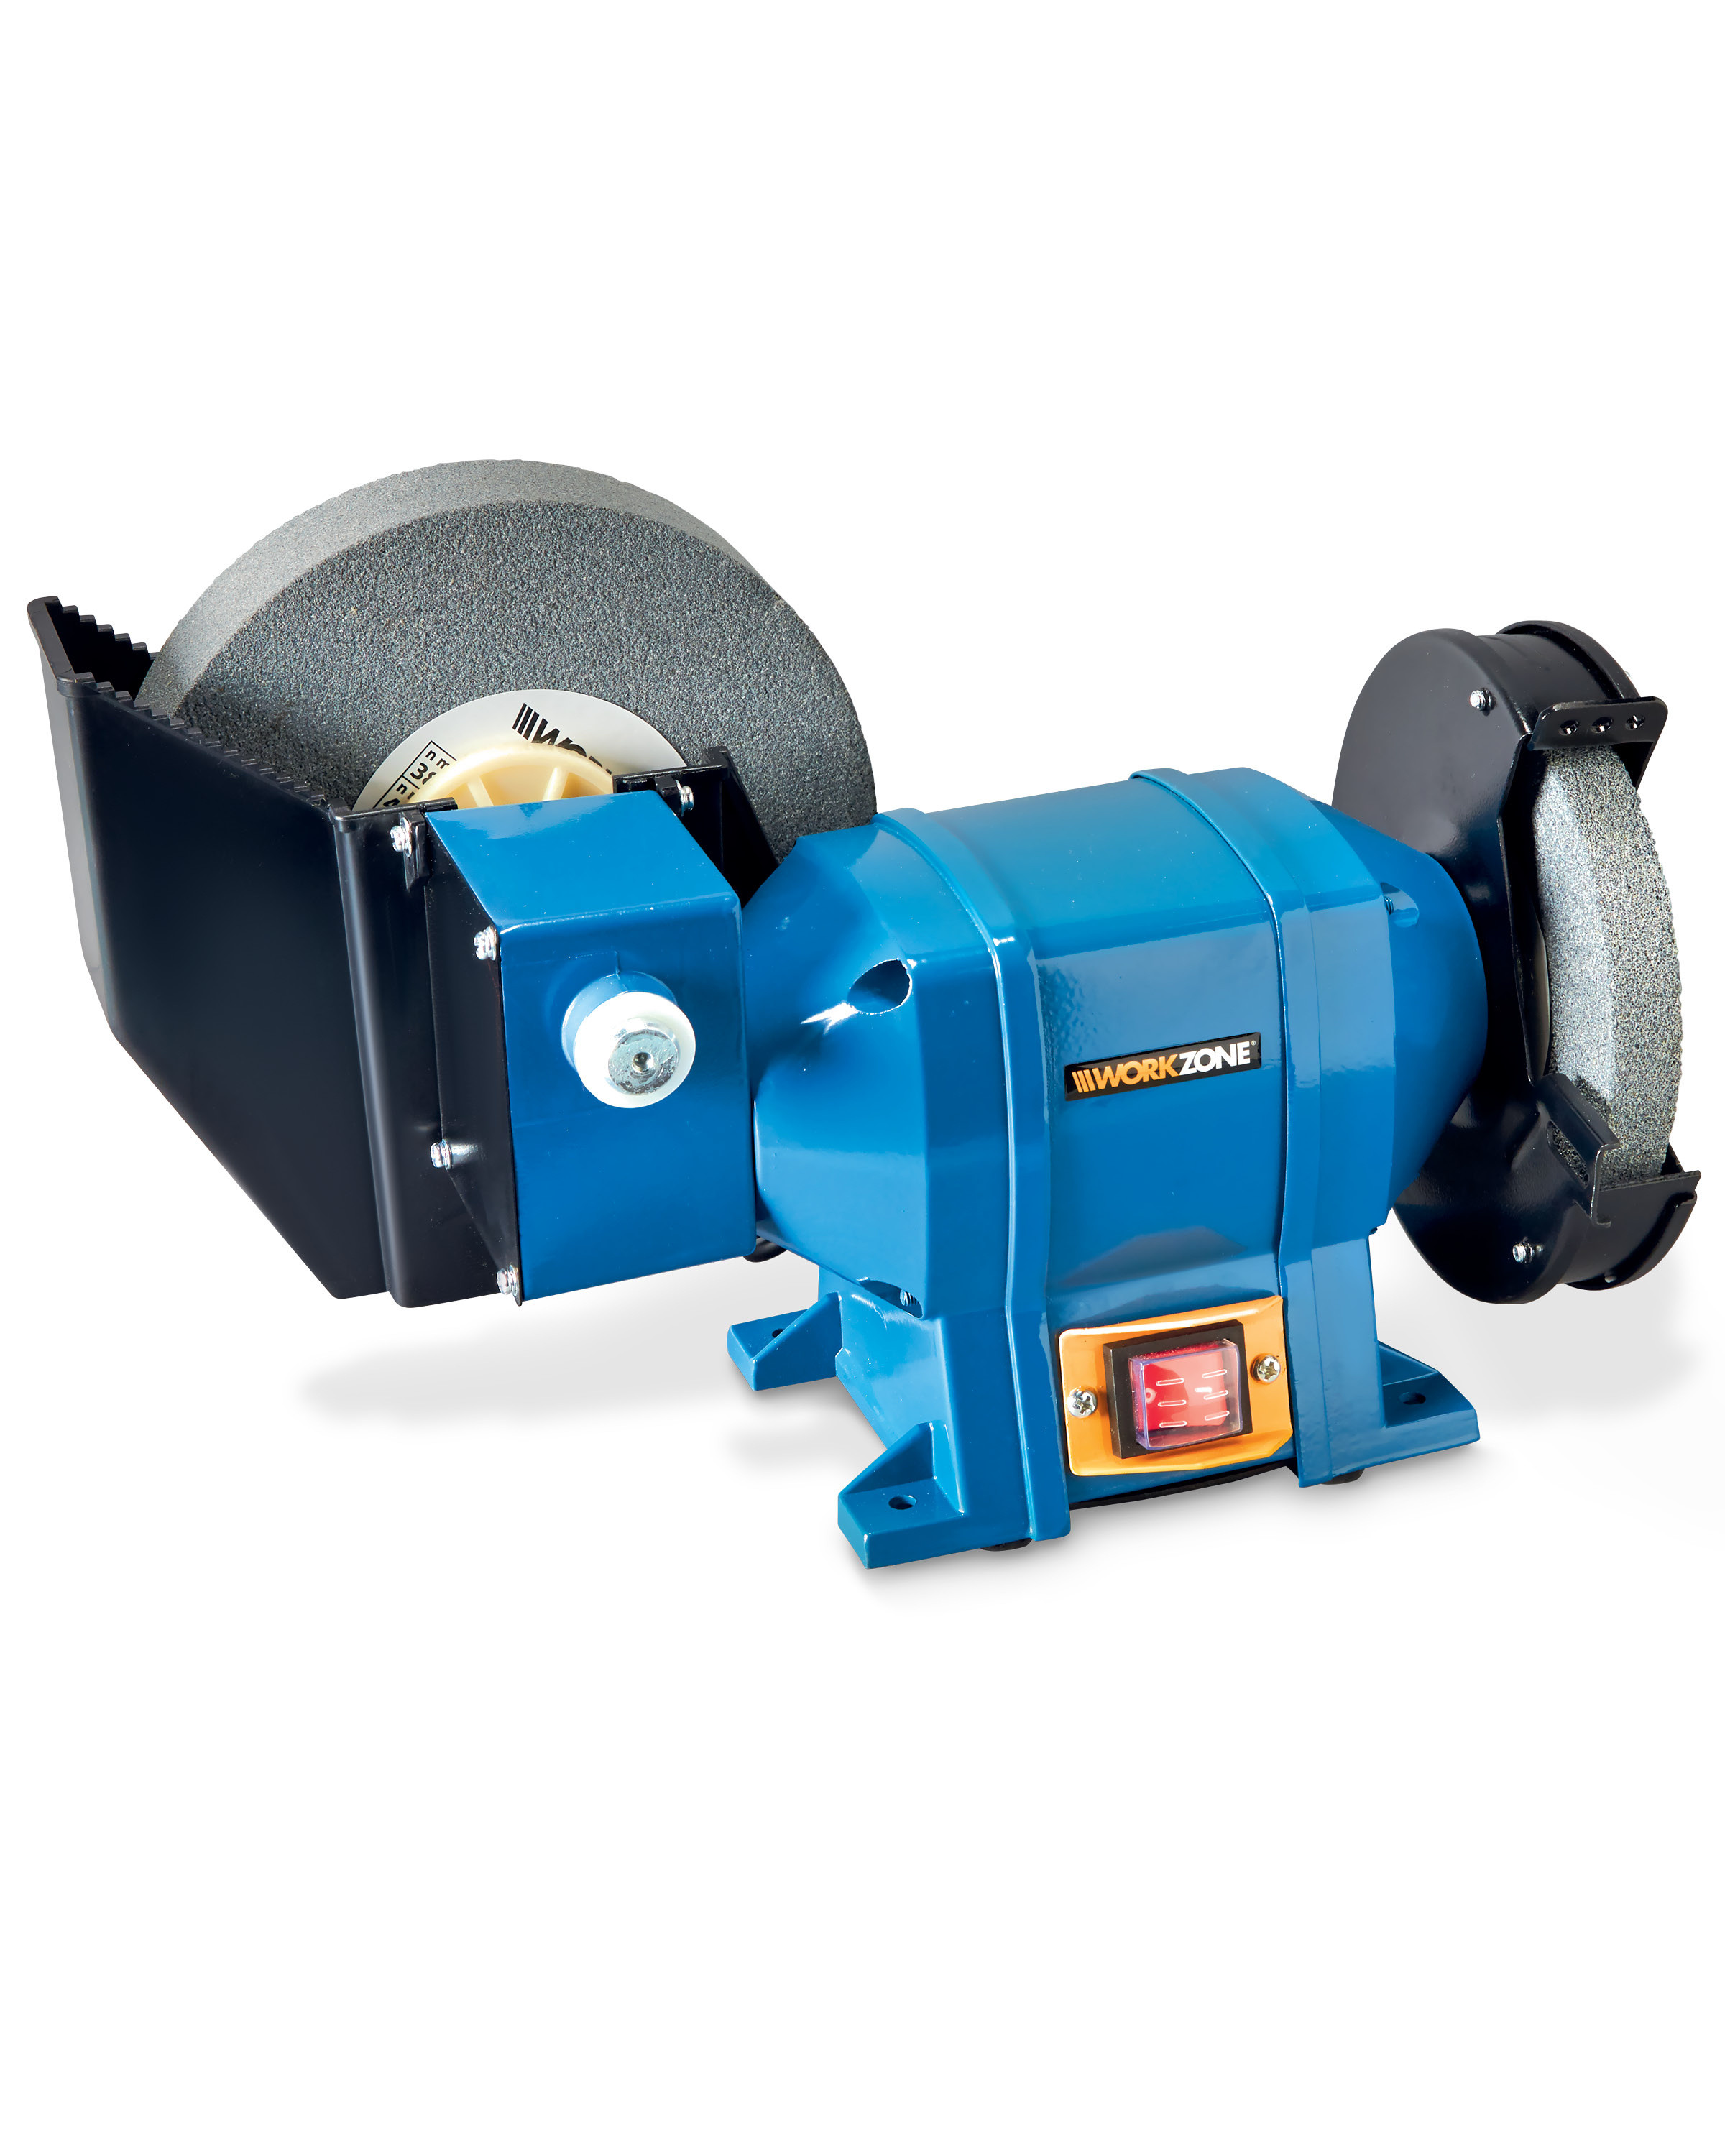 Ideas About Workzone Wet And Dry Bench Grinder